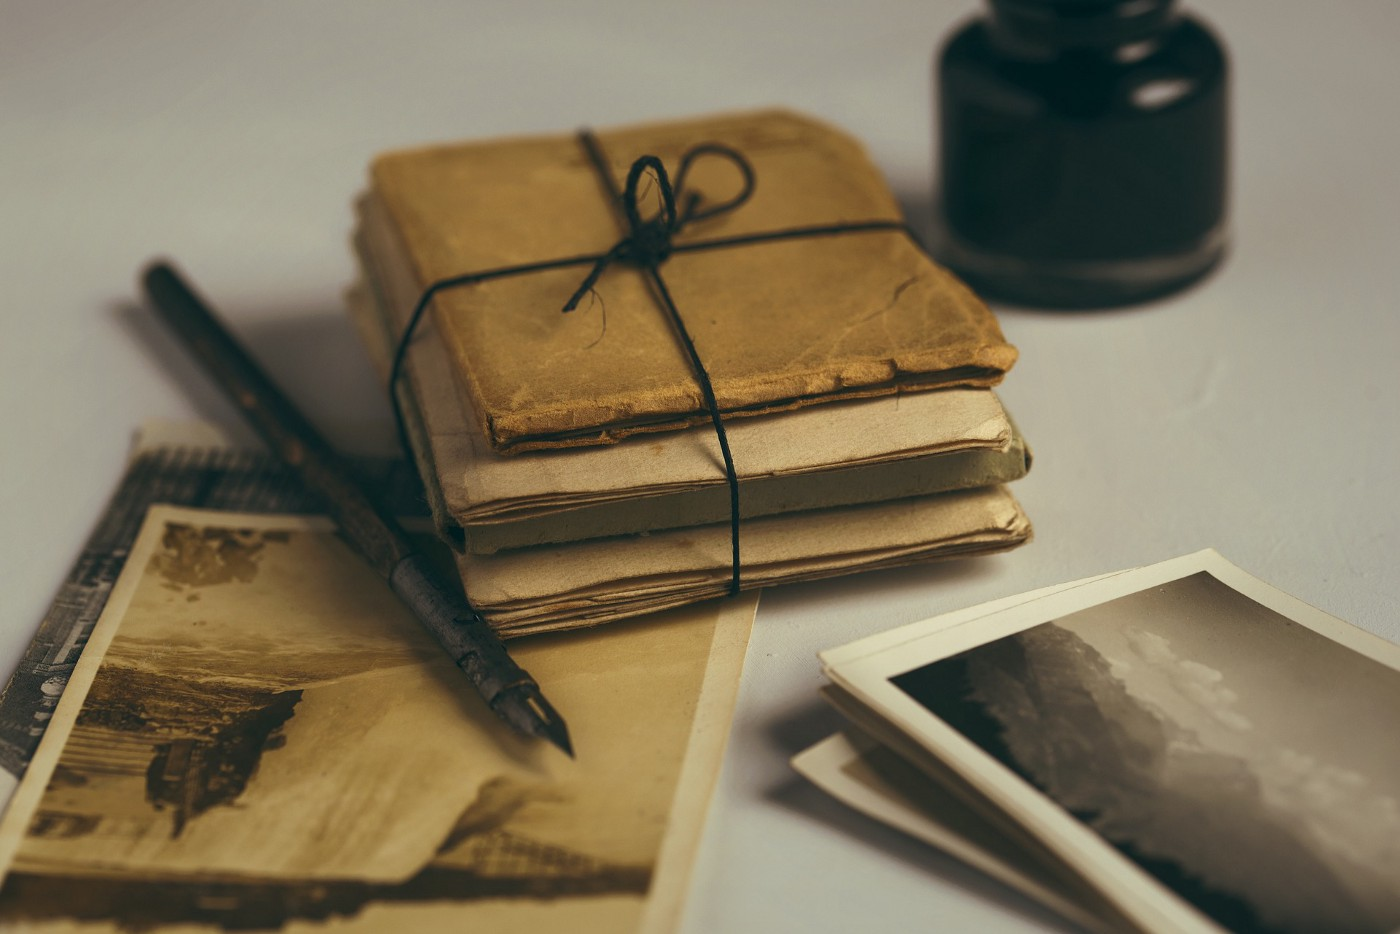 Quill, ink pot, old letters and photos